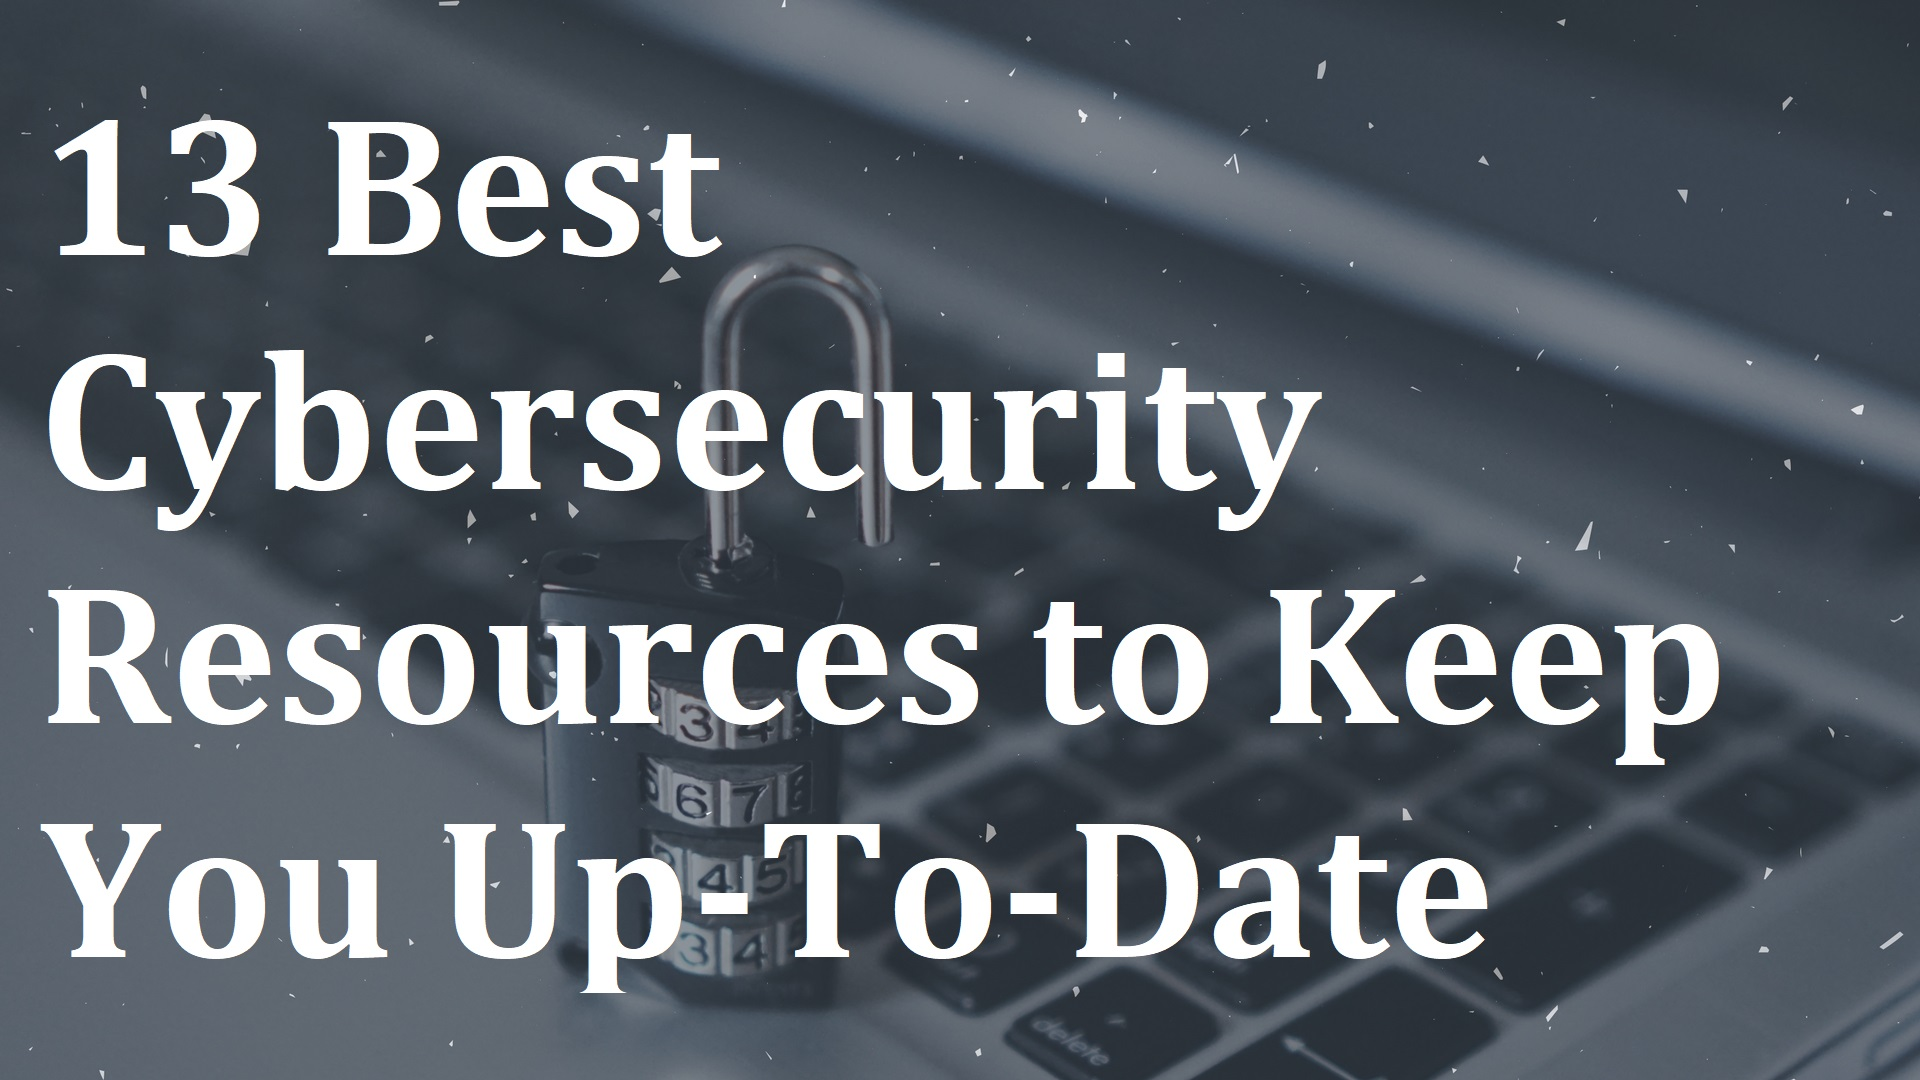 13 Best Cybersecurity Resources to Keep You Up-To-Date.jpg